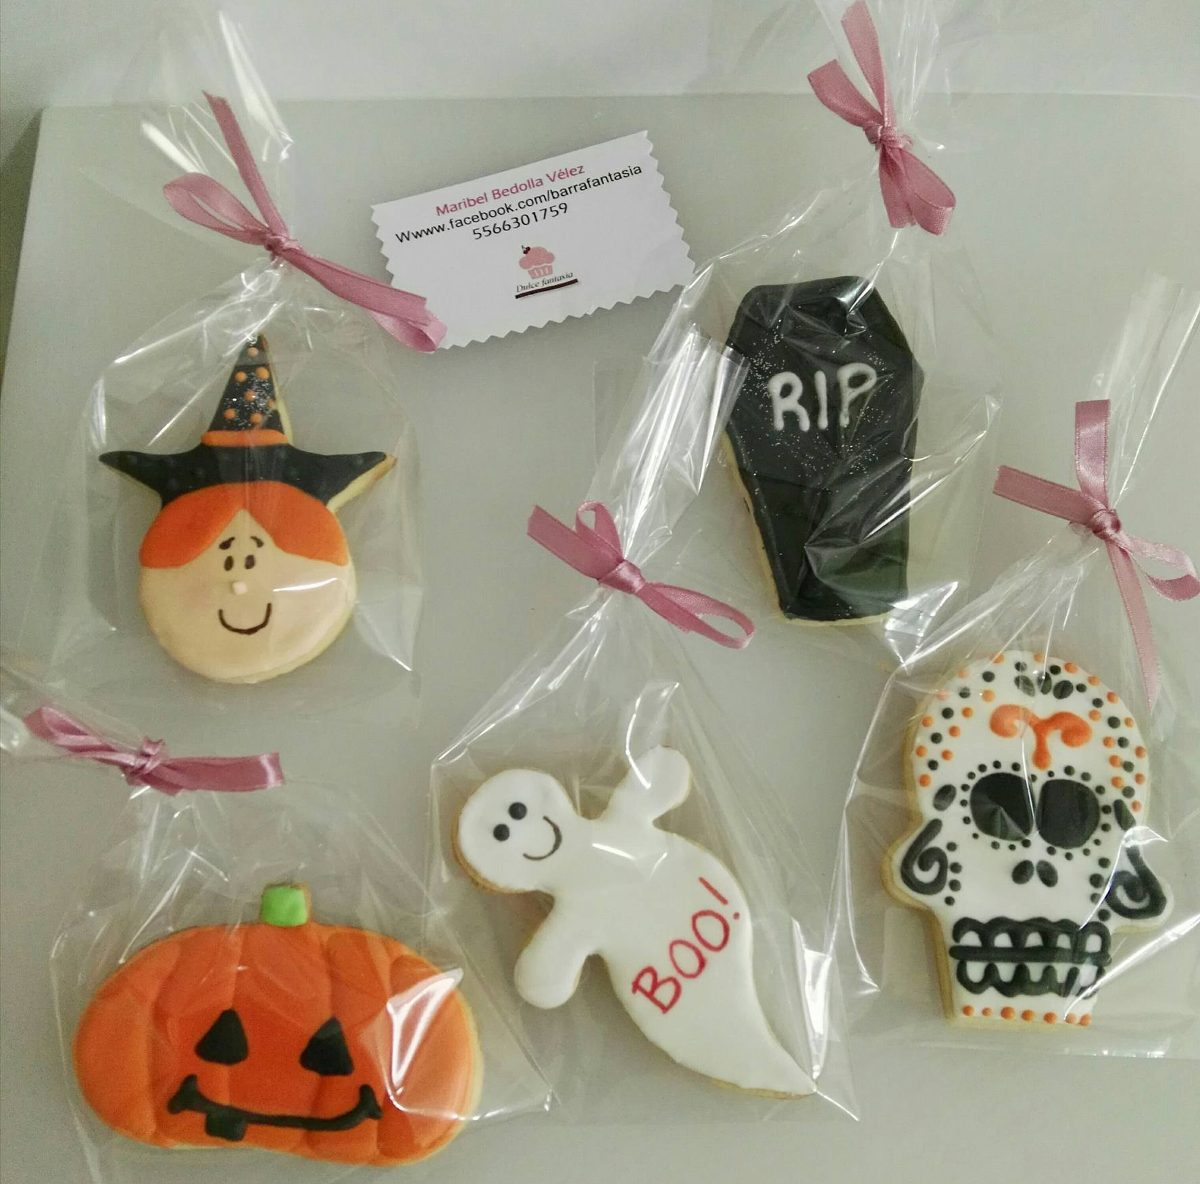 Precio De Galletas Decoradas Galletas De Halloween Galletas Decoradas 35 00 En